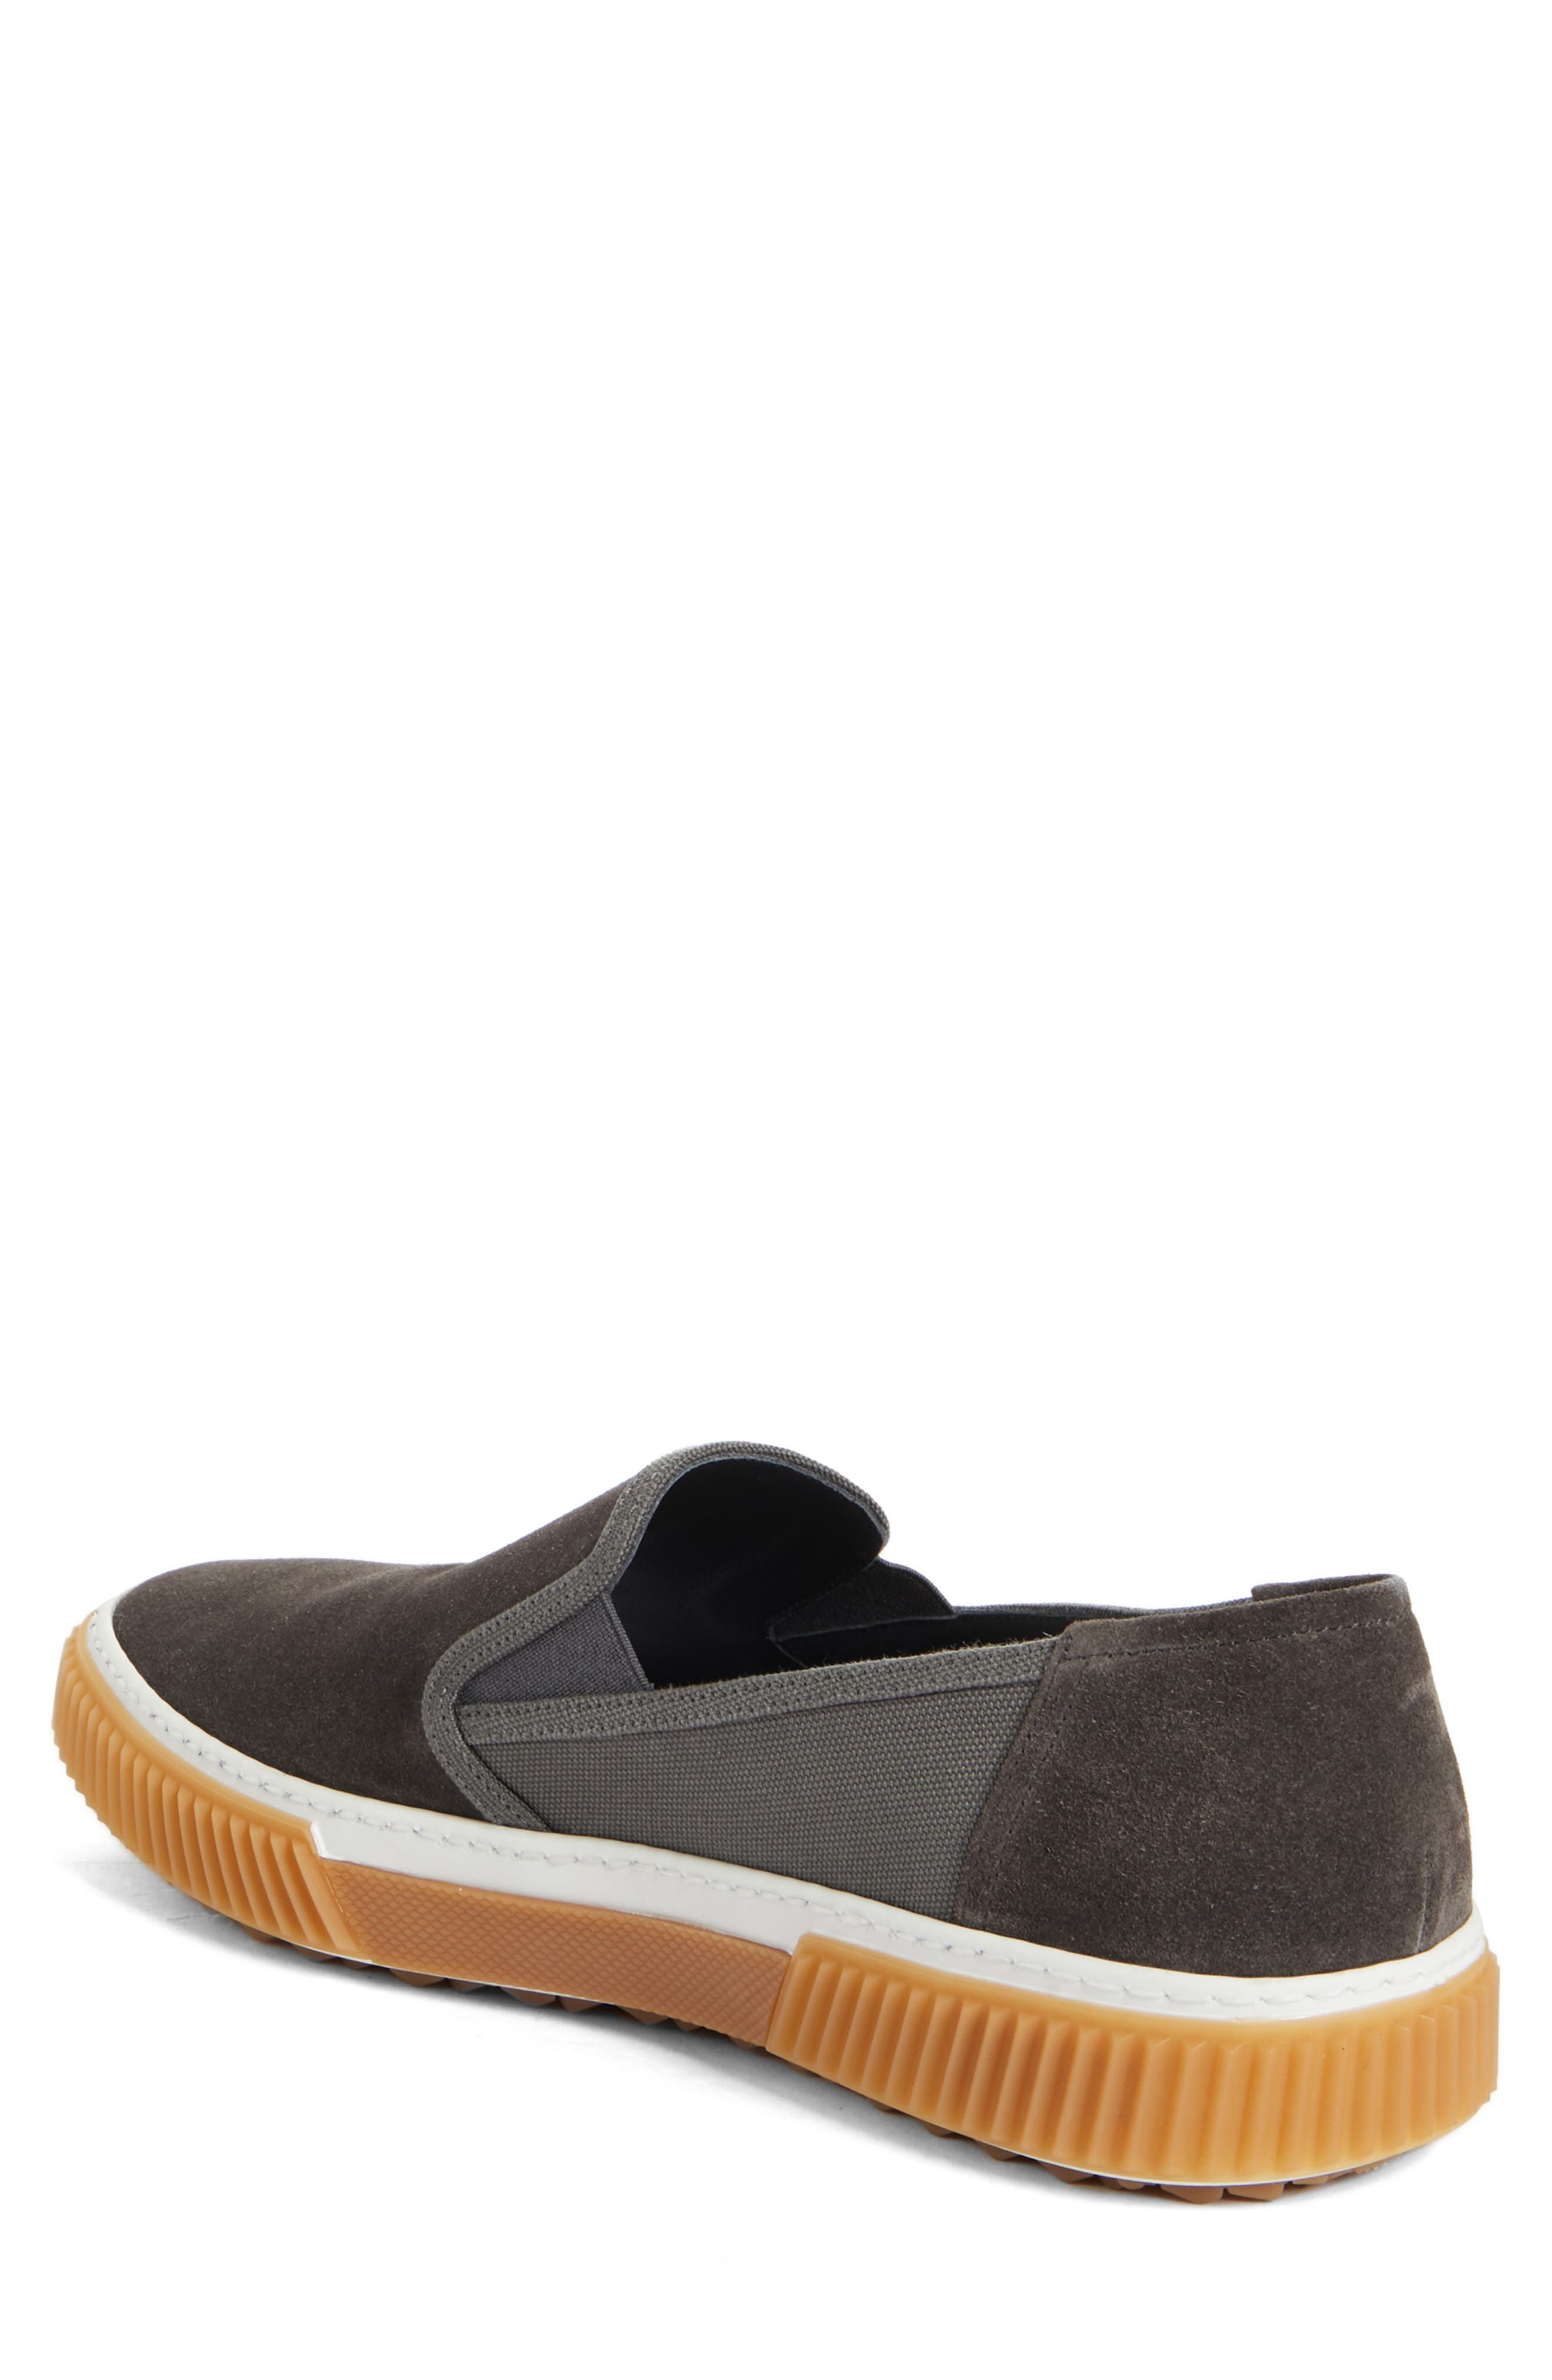 Linea Rossa Slip-On,                             Alternate thumbnail 2, color,                             GREY